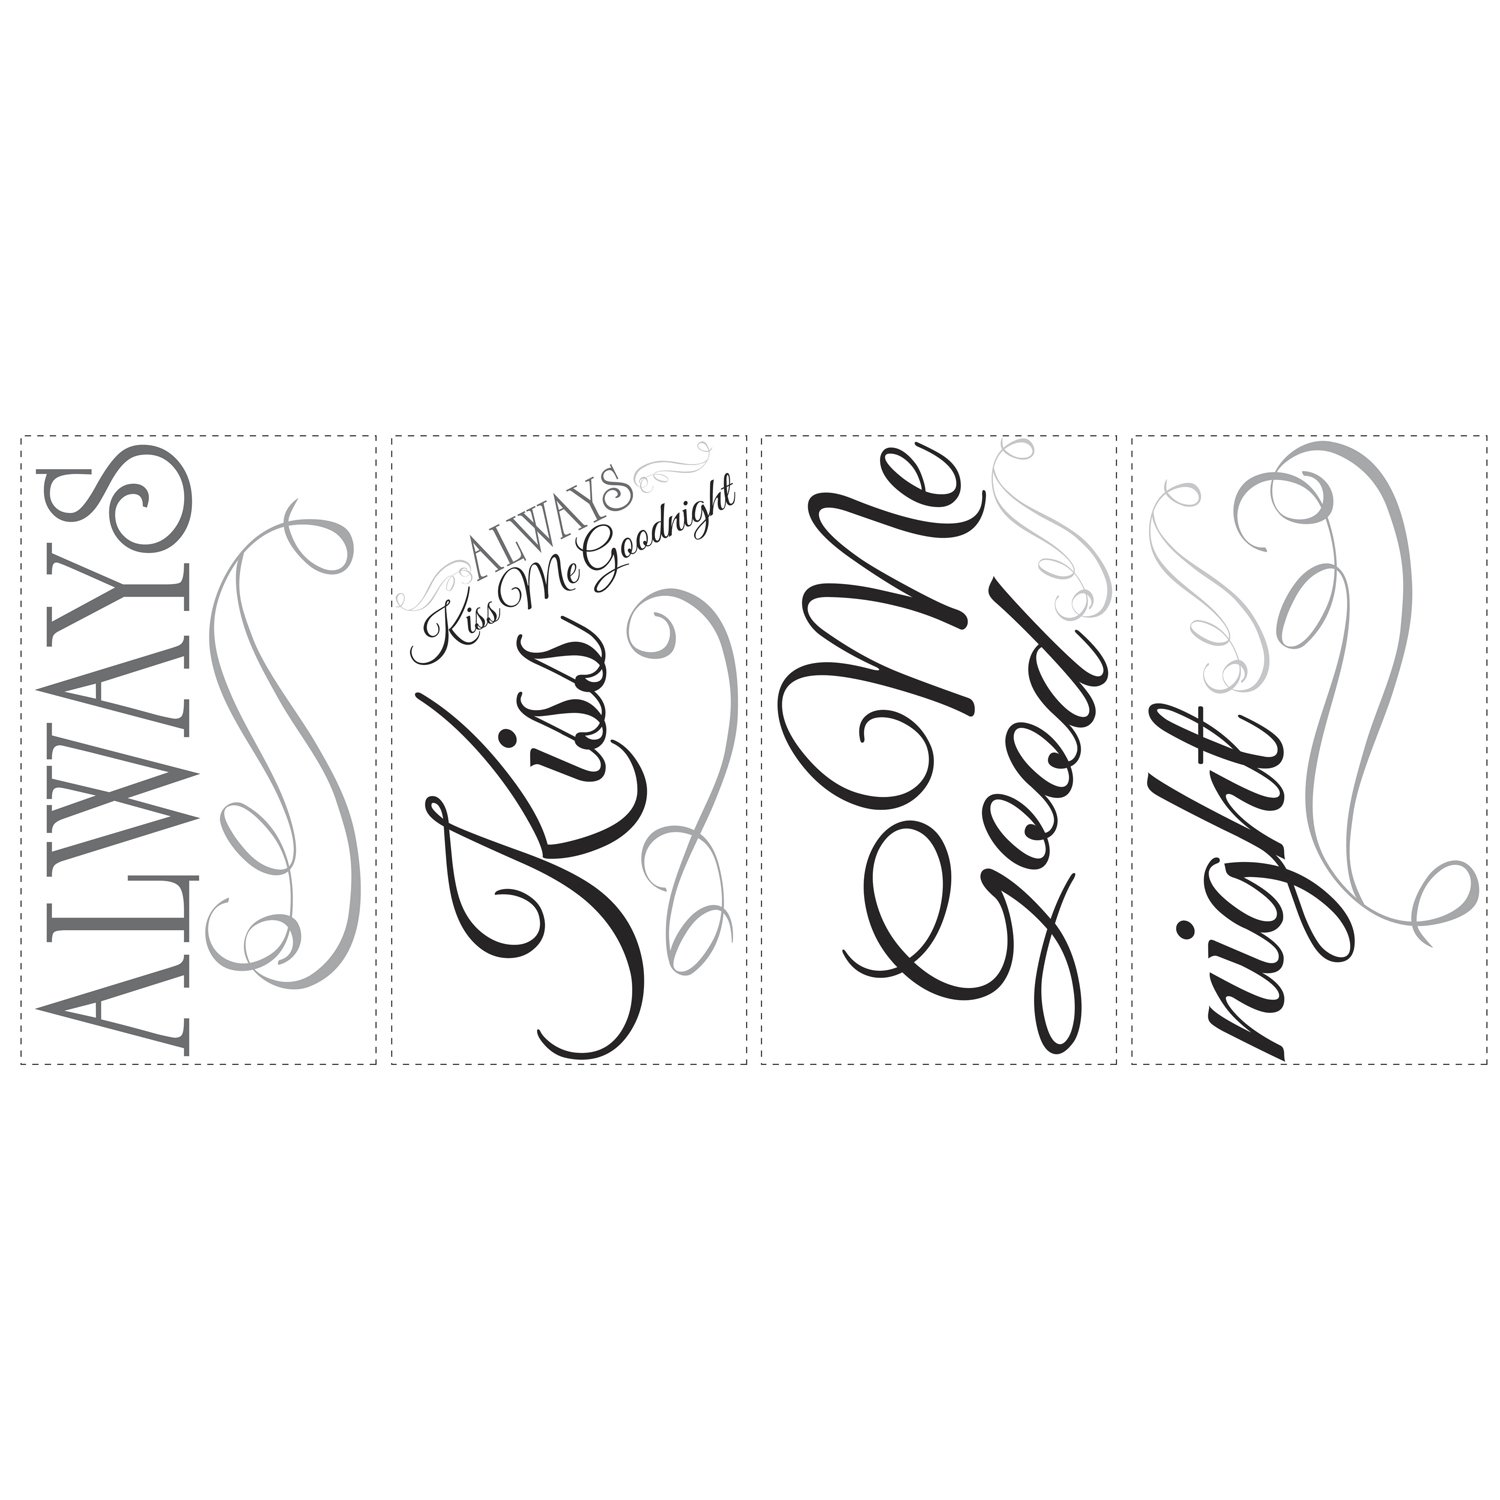 Superb Roommates RMK2084SCS Always Kiss Me Goodnight Peel And Stick Wall Decals    Decorative Wall Appliques   Amazon.com